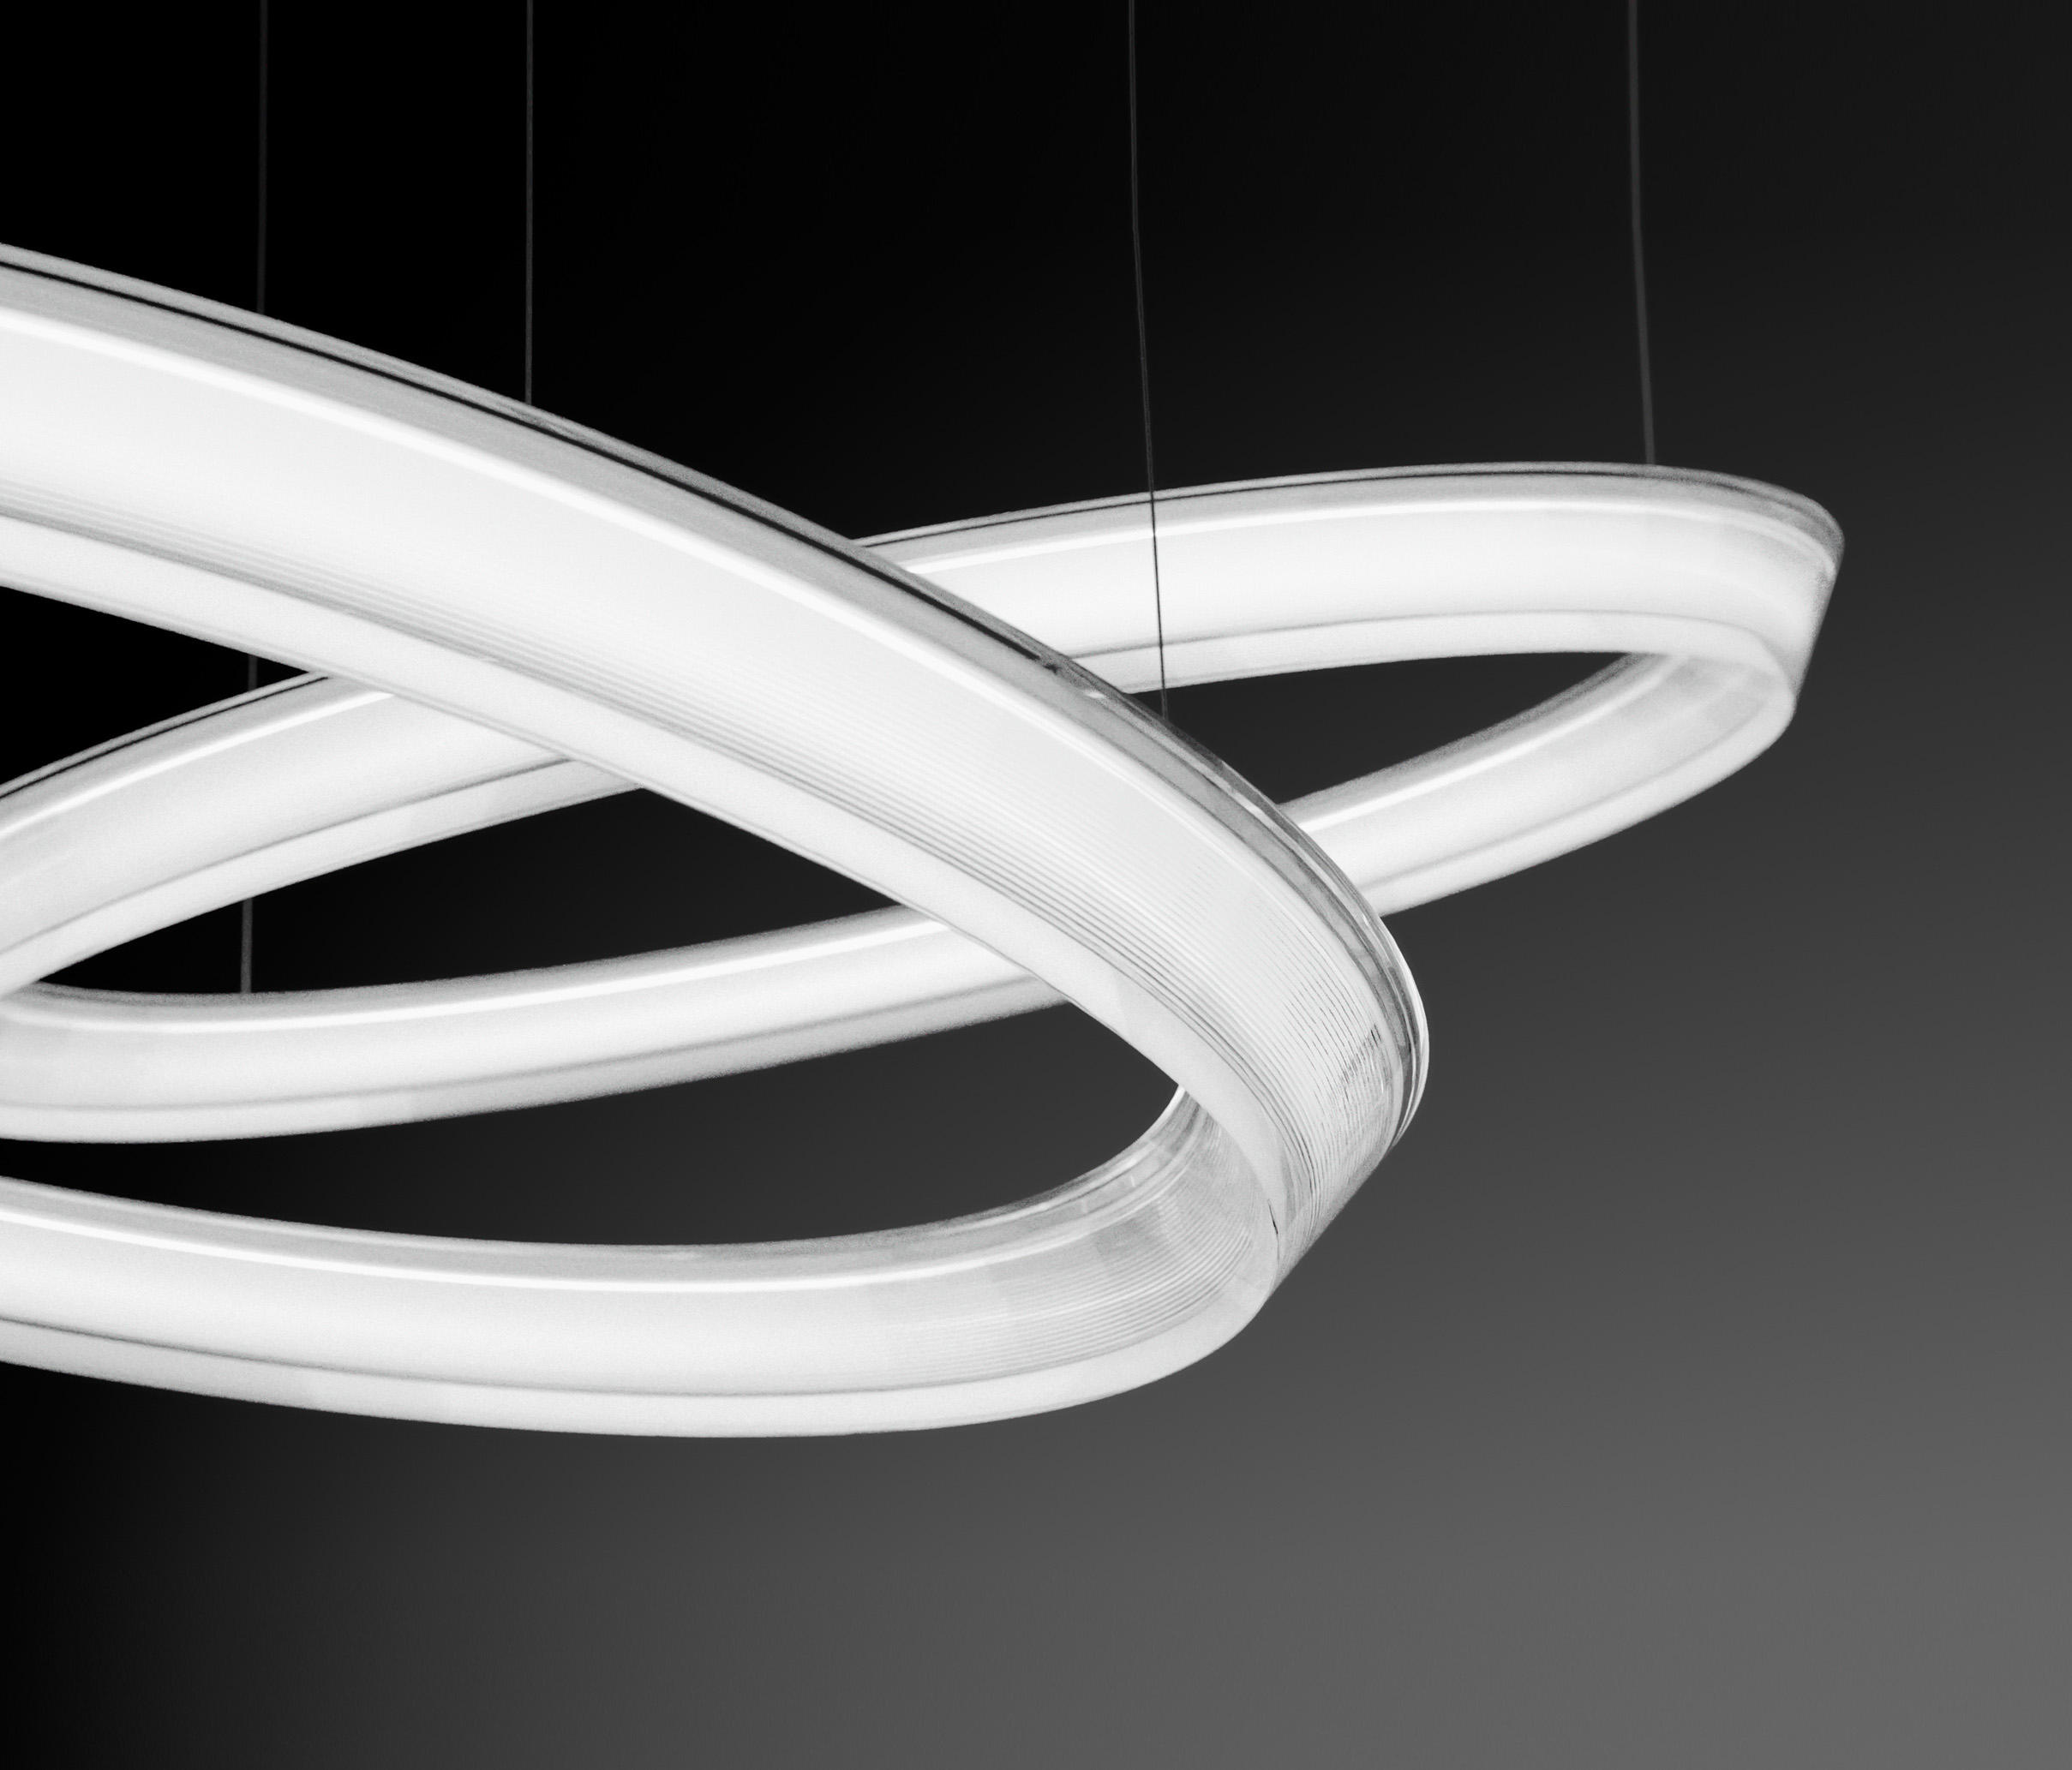 Martin Verlichting Halo Hanging Lamp Double Suspended Lights From Vibia Architonic